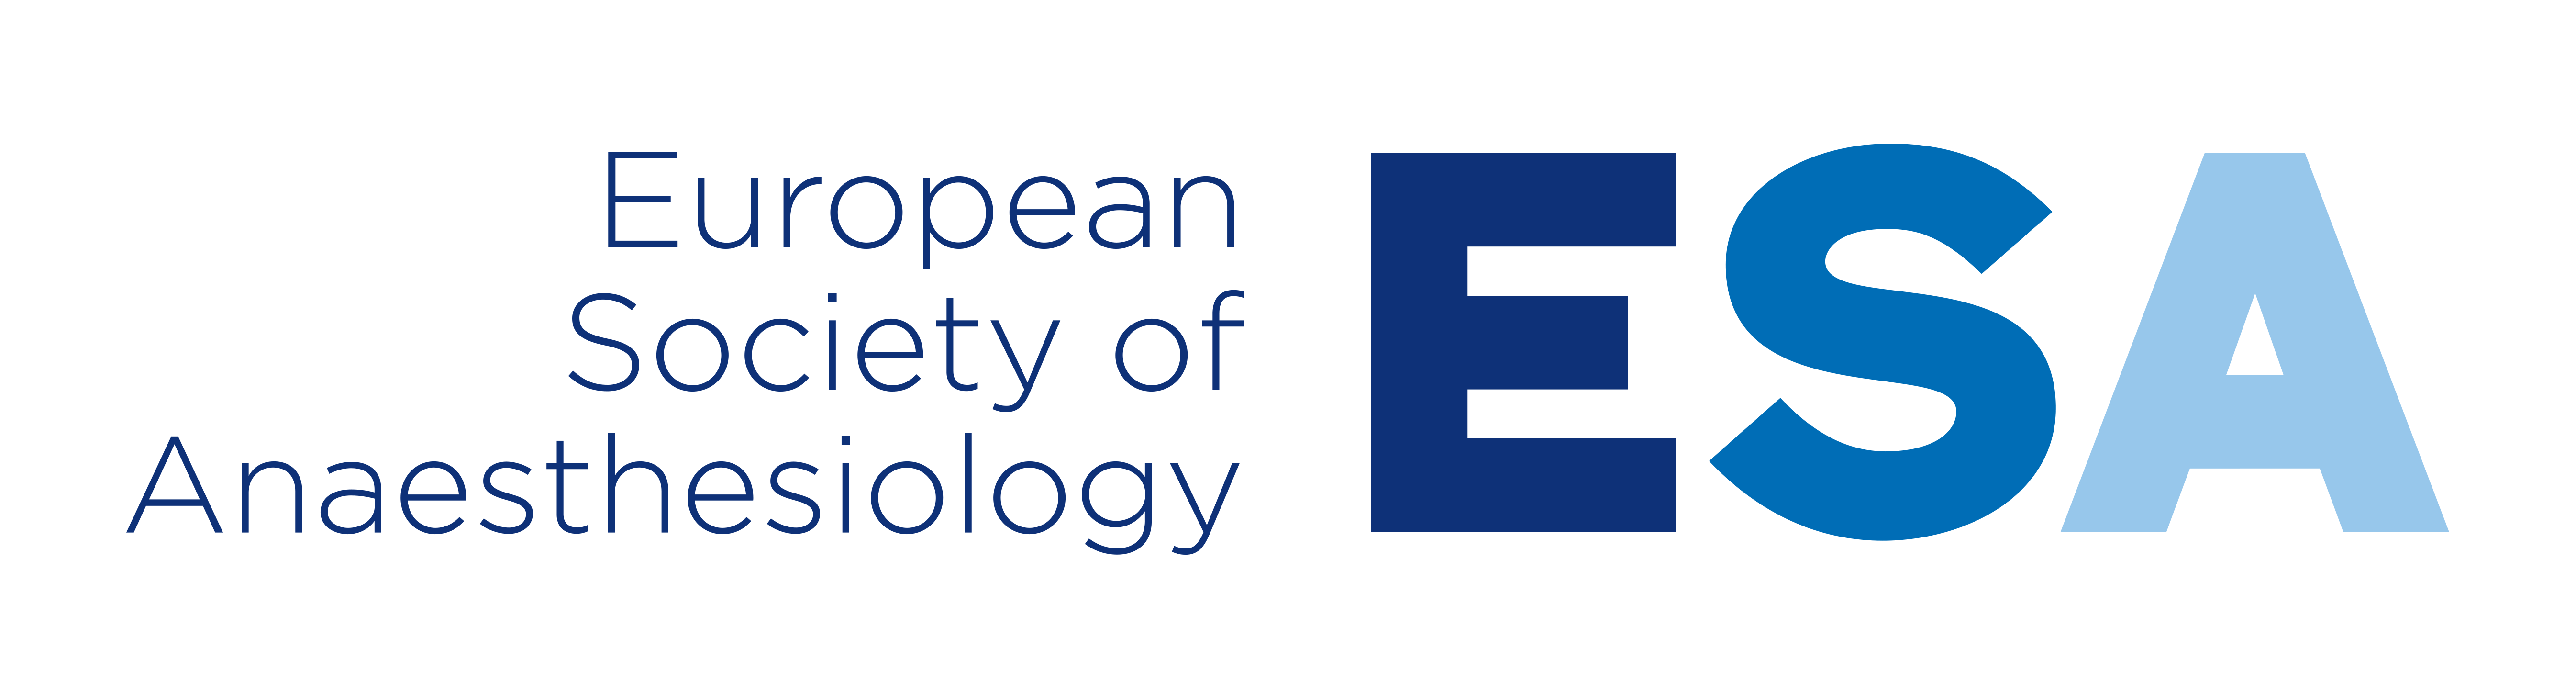 ESA-with-text-png-HQ